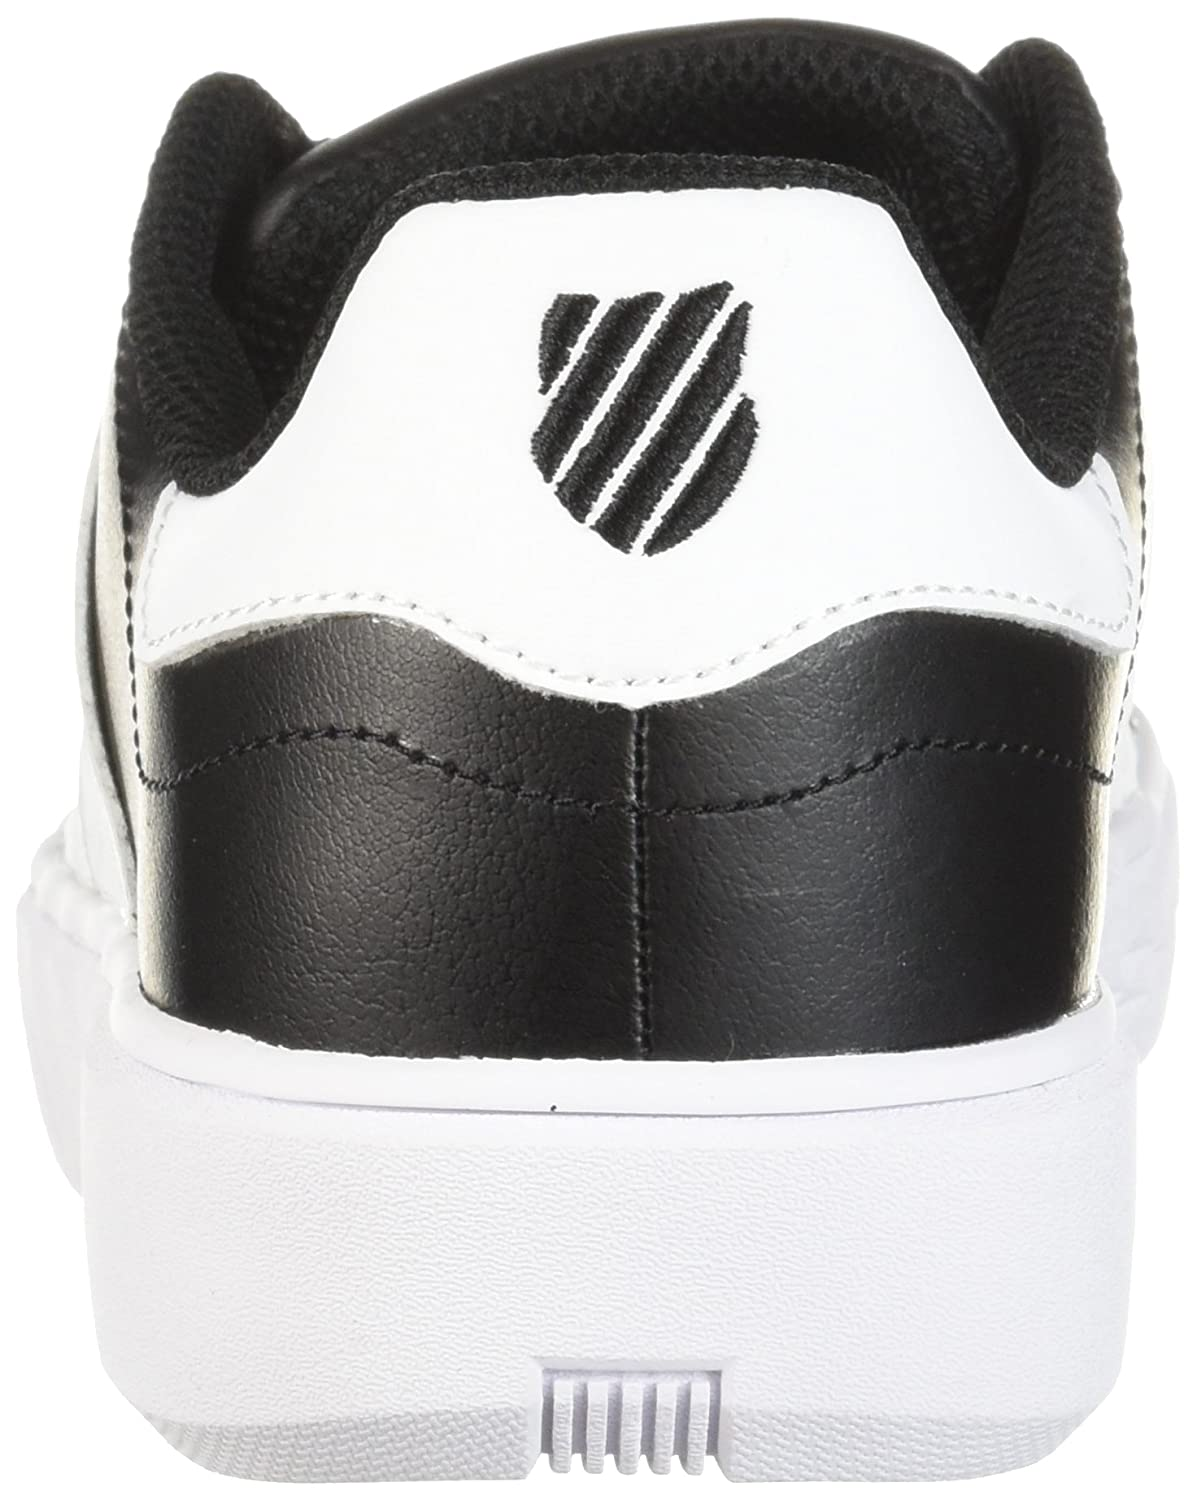 K-Swiss Women's Pershing Court CMF Sneaker B073WR1KHJ 8 B(M) US|Black/White